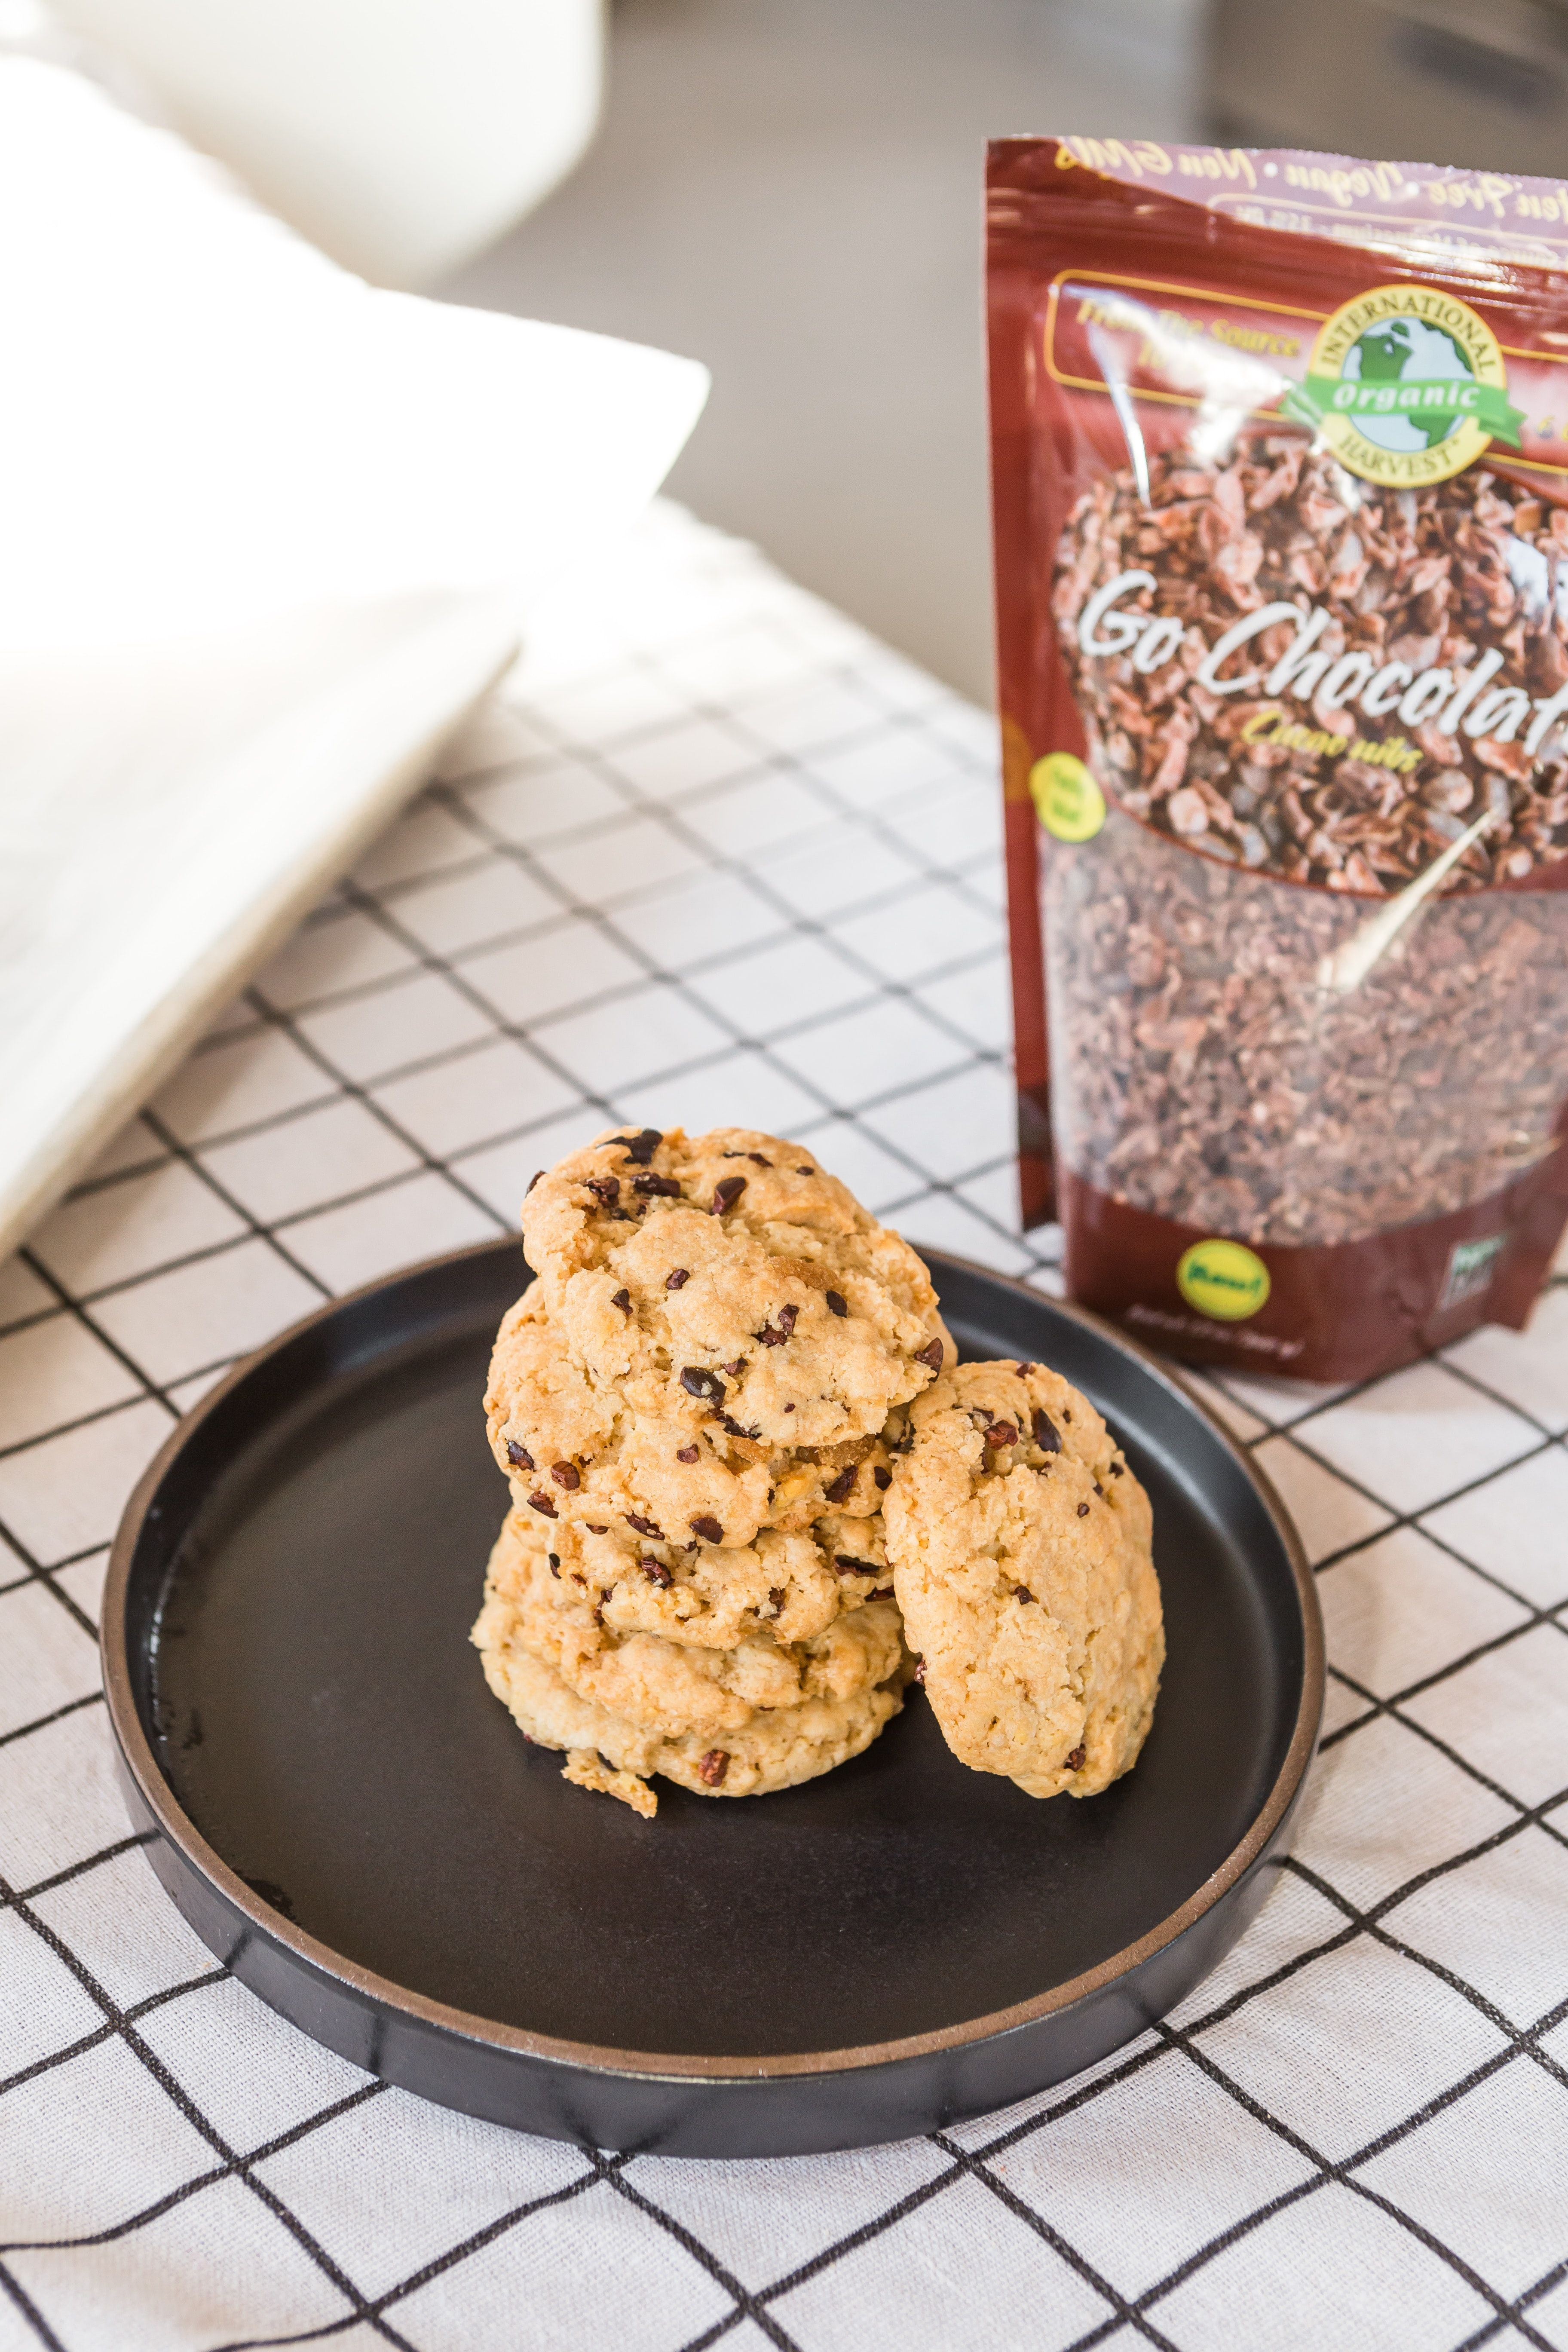 The Best Oatmeal Cookies For National Oatmeal Cookie Day Influenster Reviews 2020 In 2020 Fun Snack Recipe Best Oatmeal Cookies Oatmeal Cookies